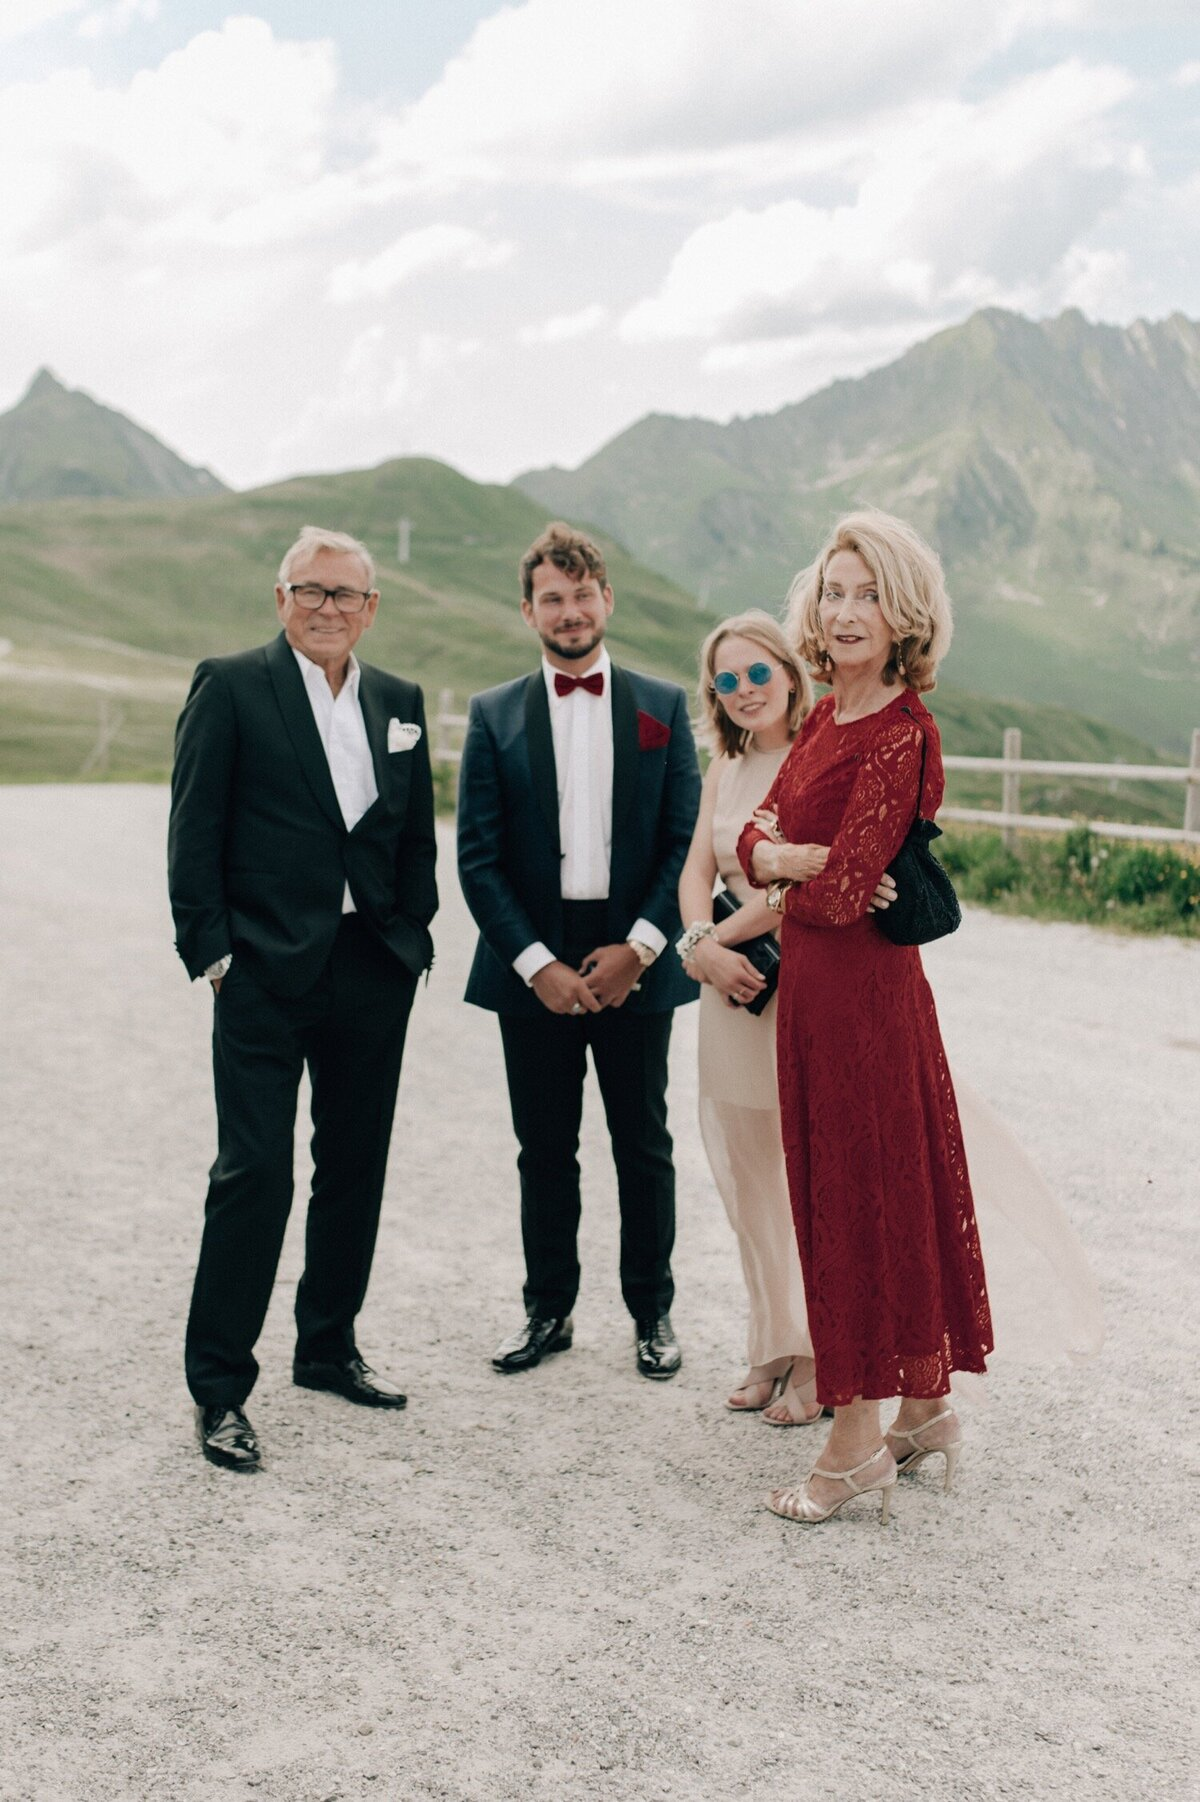 105_Austria_Luxury_Wedding_Photographer (105 von 216)_Flora and Grace is a luxury wedding photographer for stylish and elegant weddings.